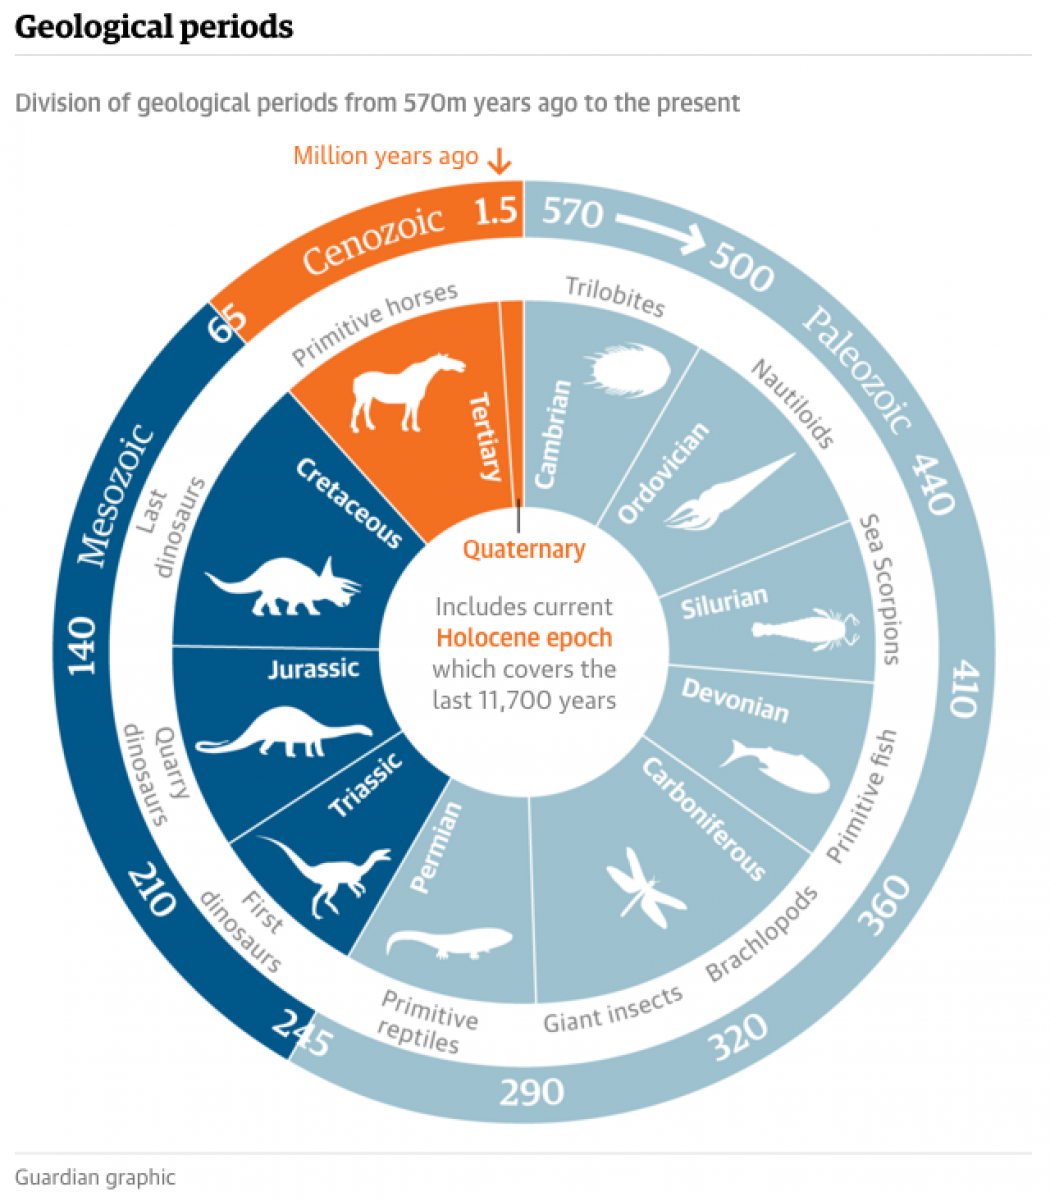 Human Impact Has Pushed Earth Into the Anthropocene | Climate Central